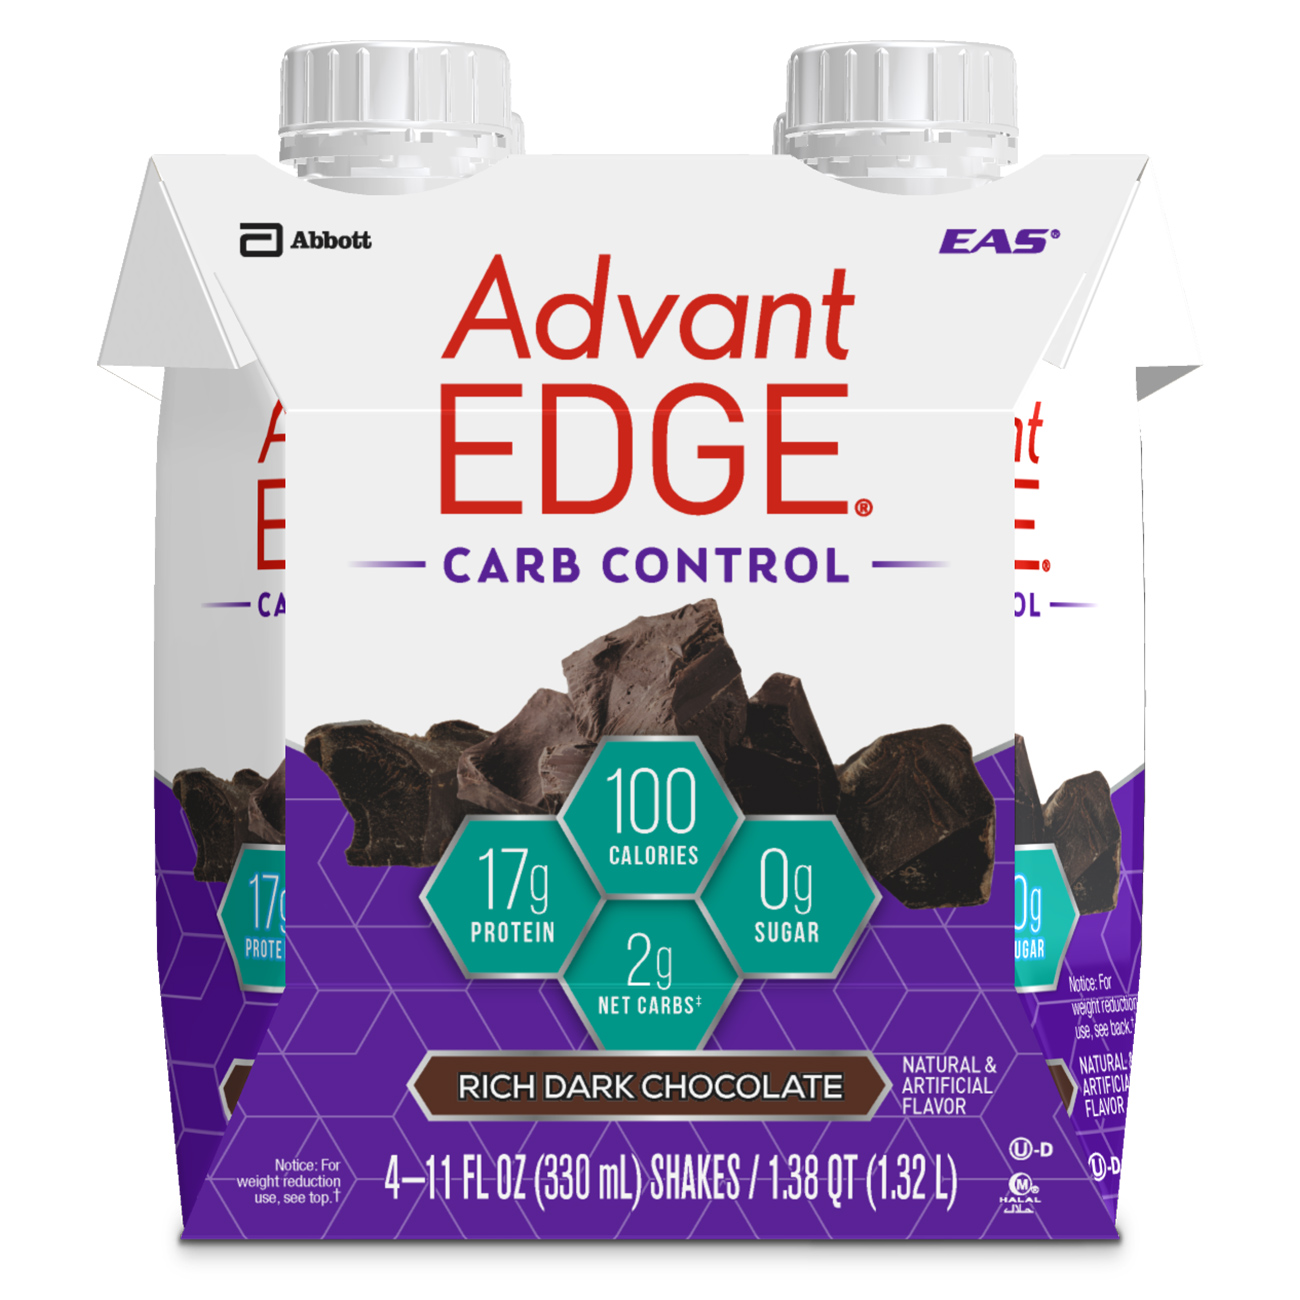 EAS AdvantEdge Pure Milk Deluxe Dark Chocolate Protein Shake 4-11 fl. oz. Cartons by Abbott Nutrition